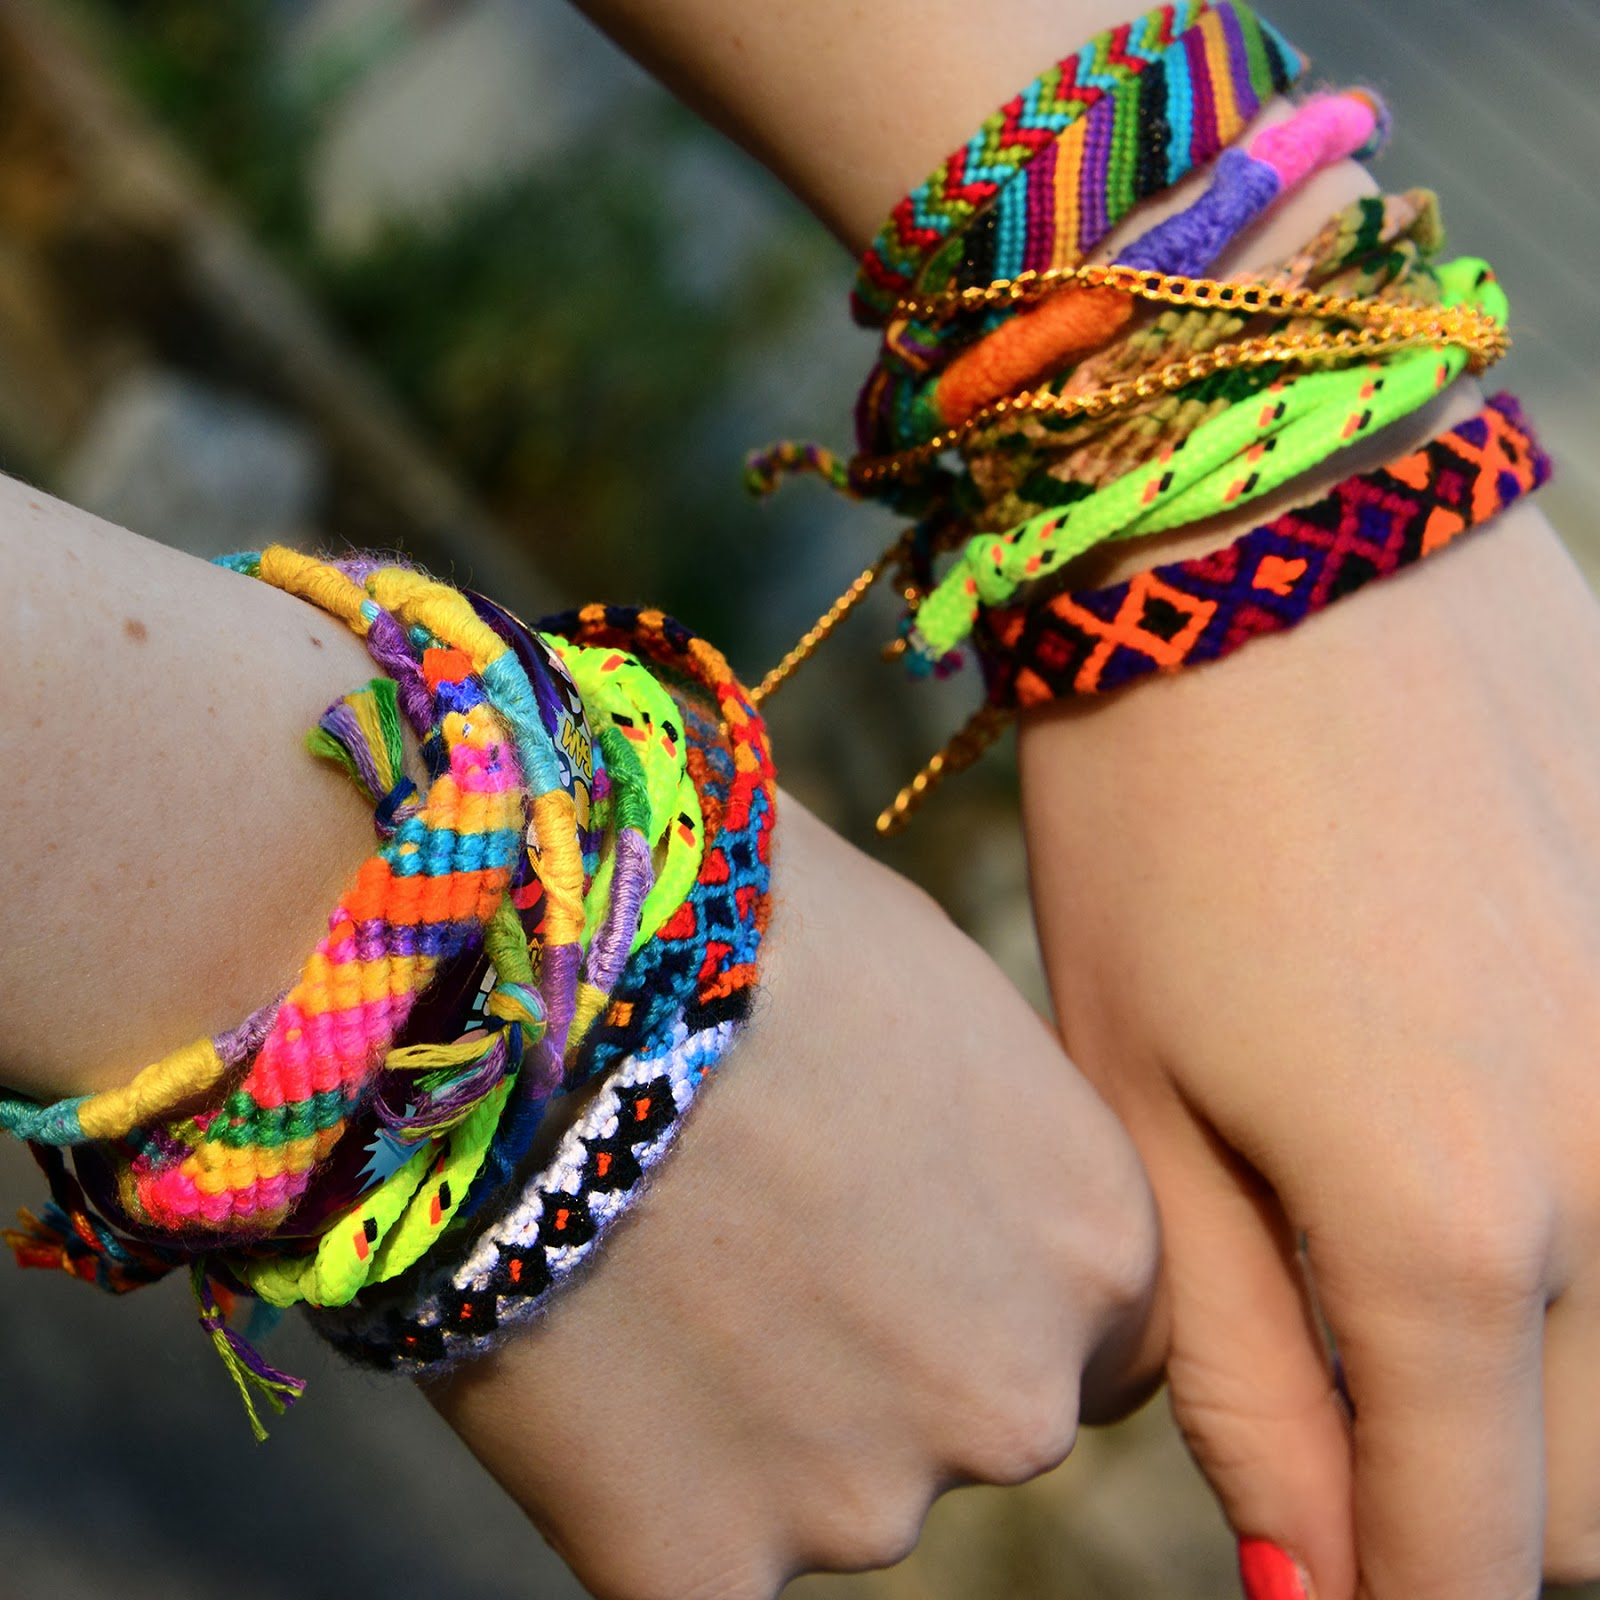 New fashion style hand bands for party girls - Sari Info